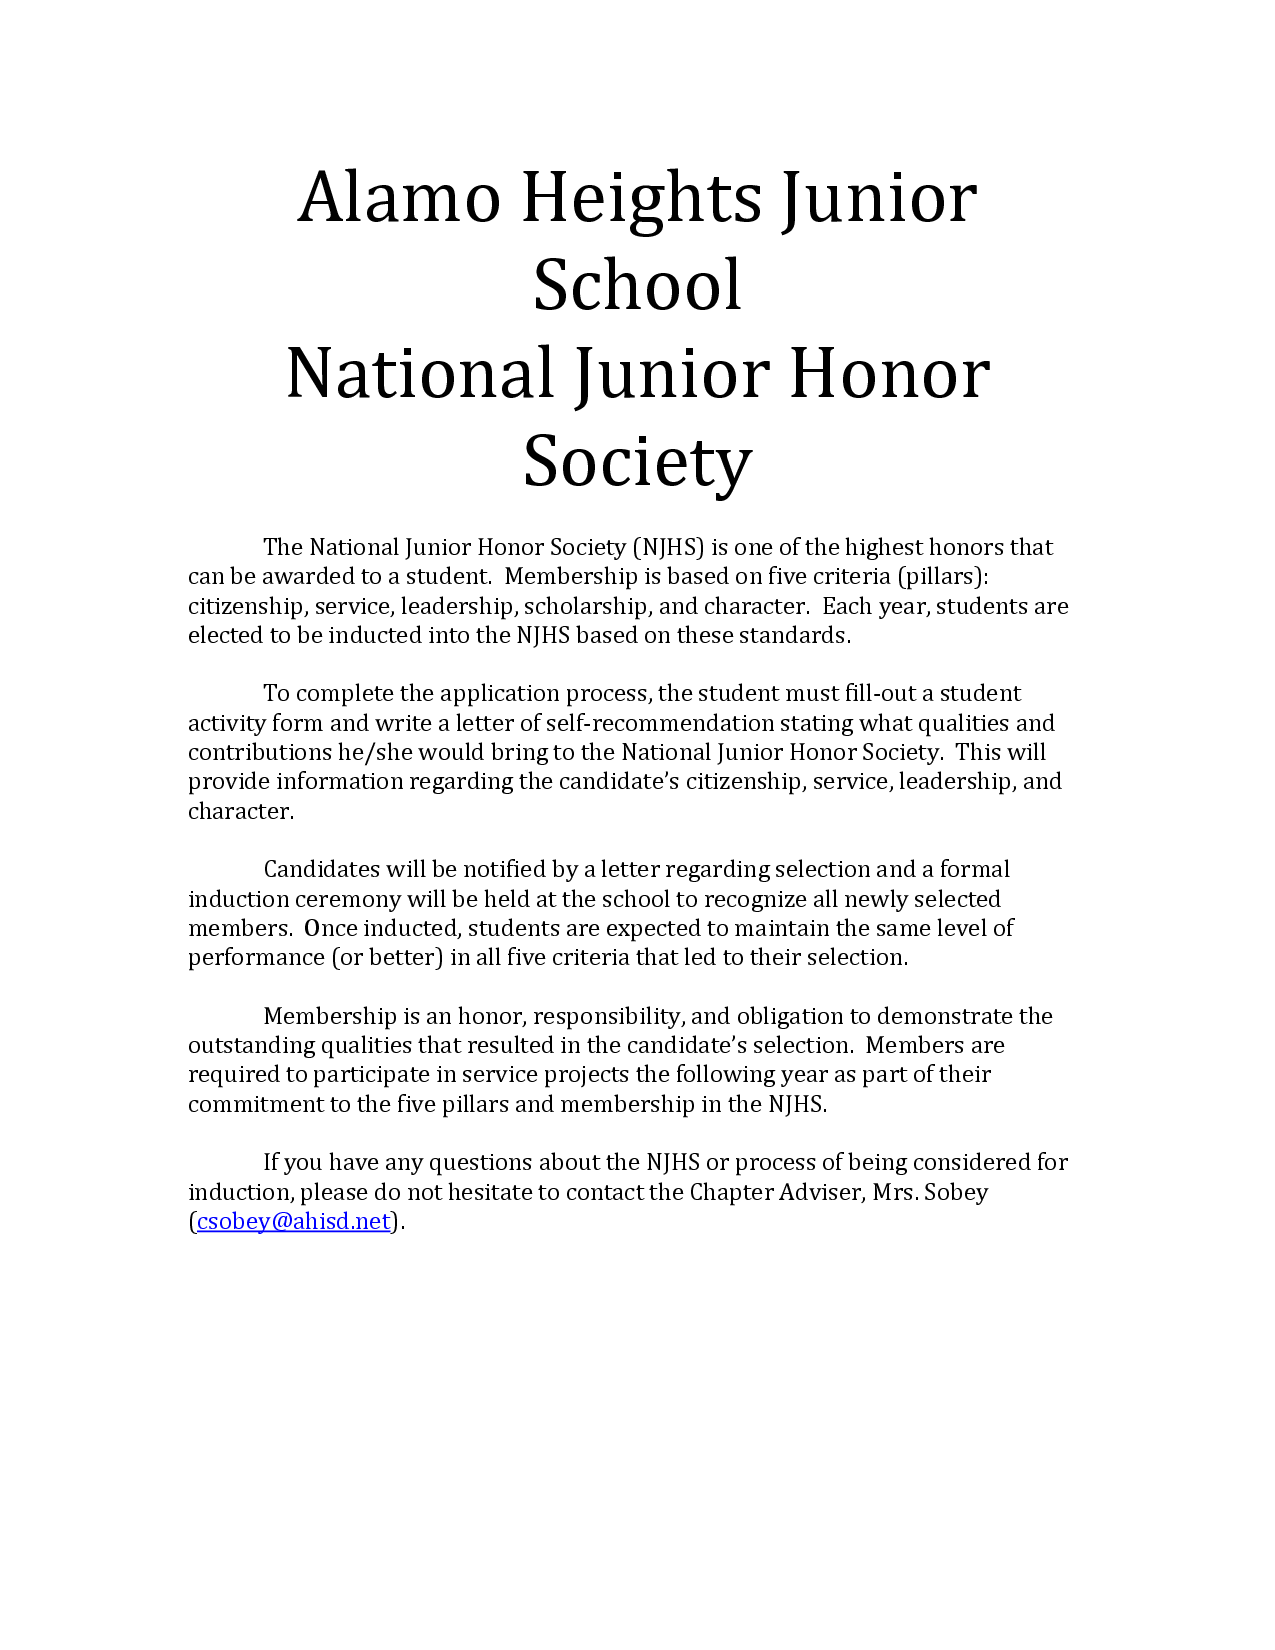 national honor society cover letter